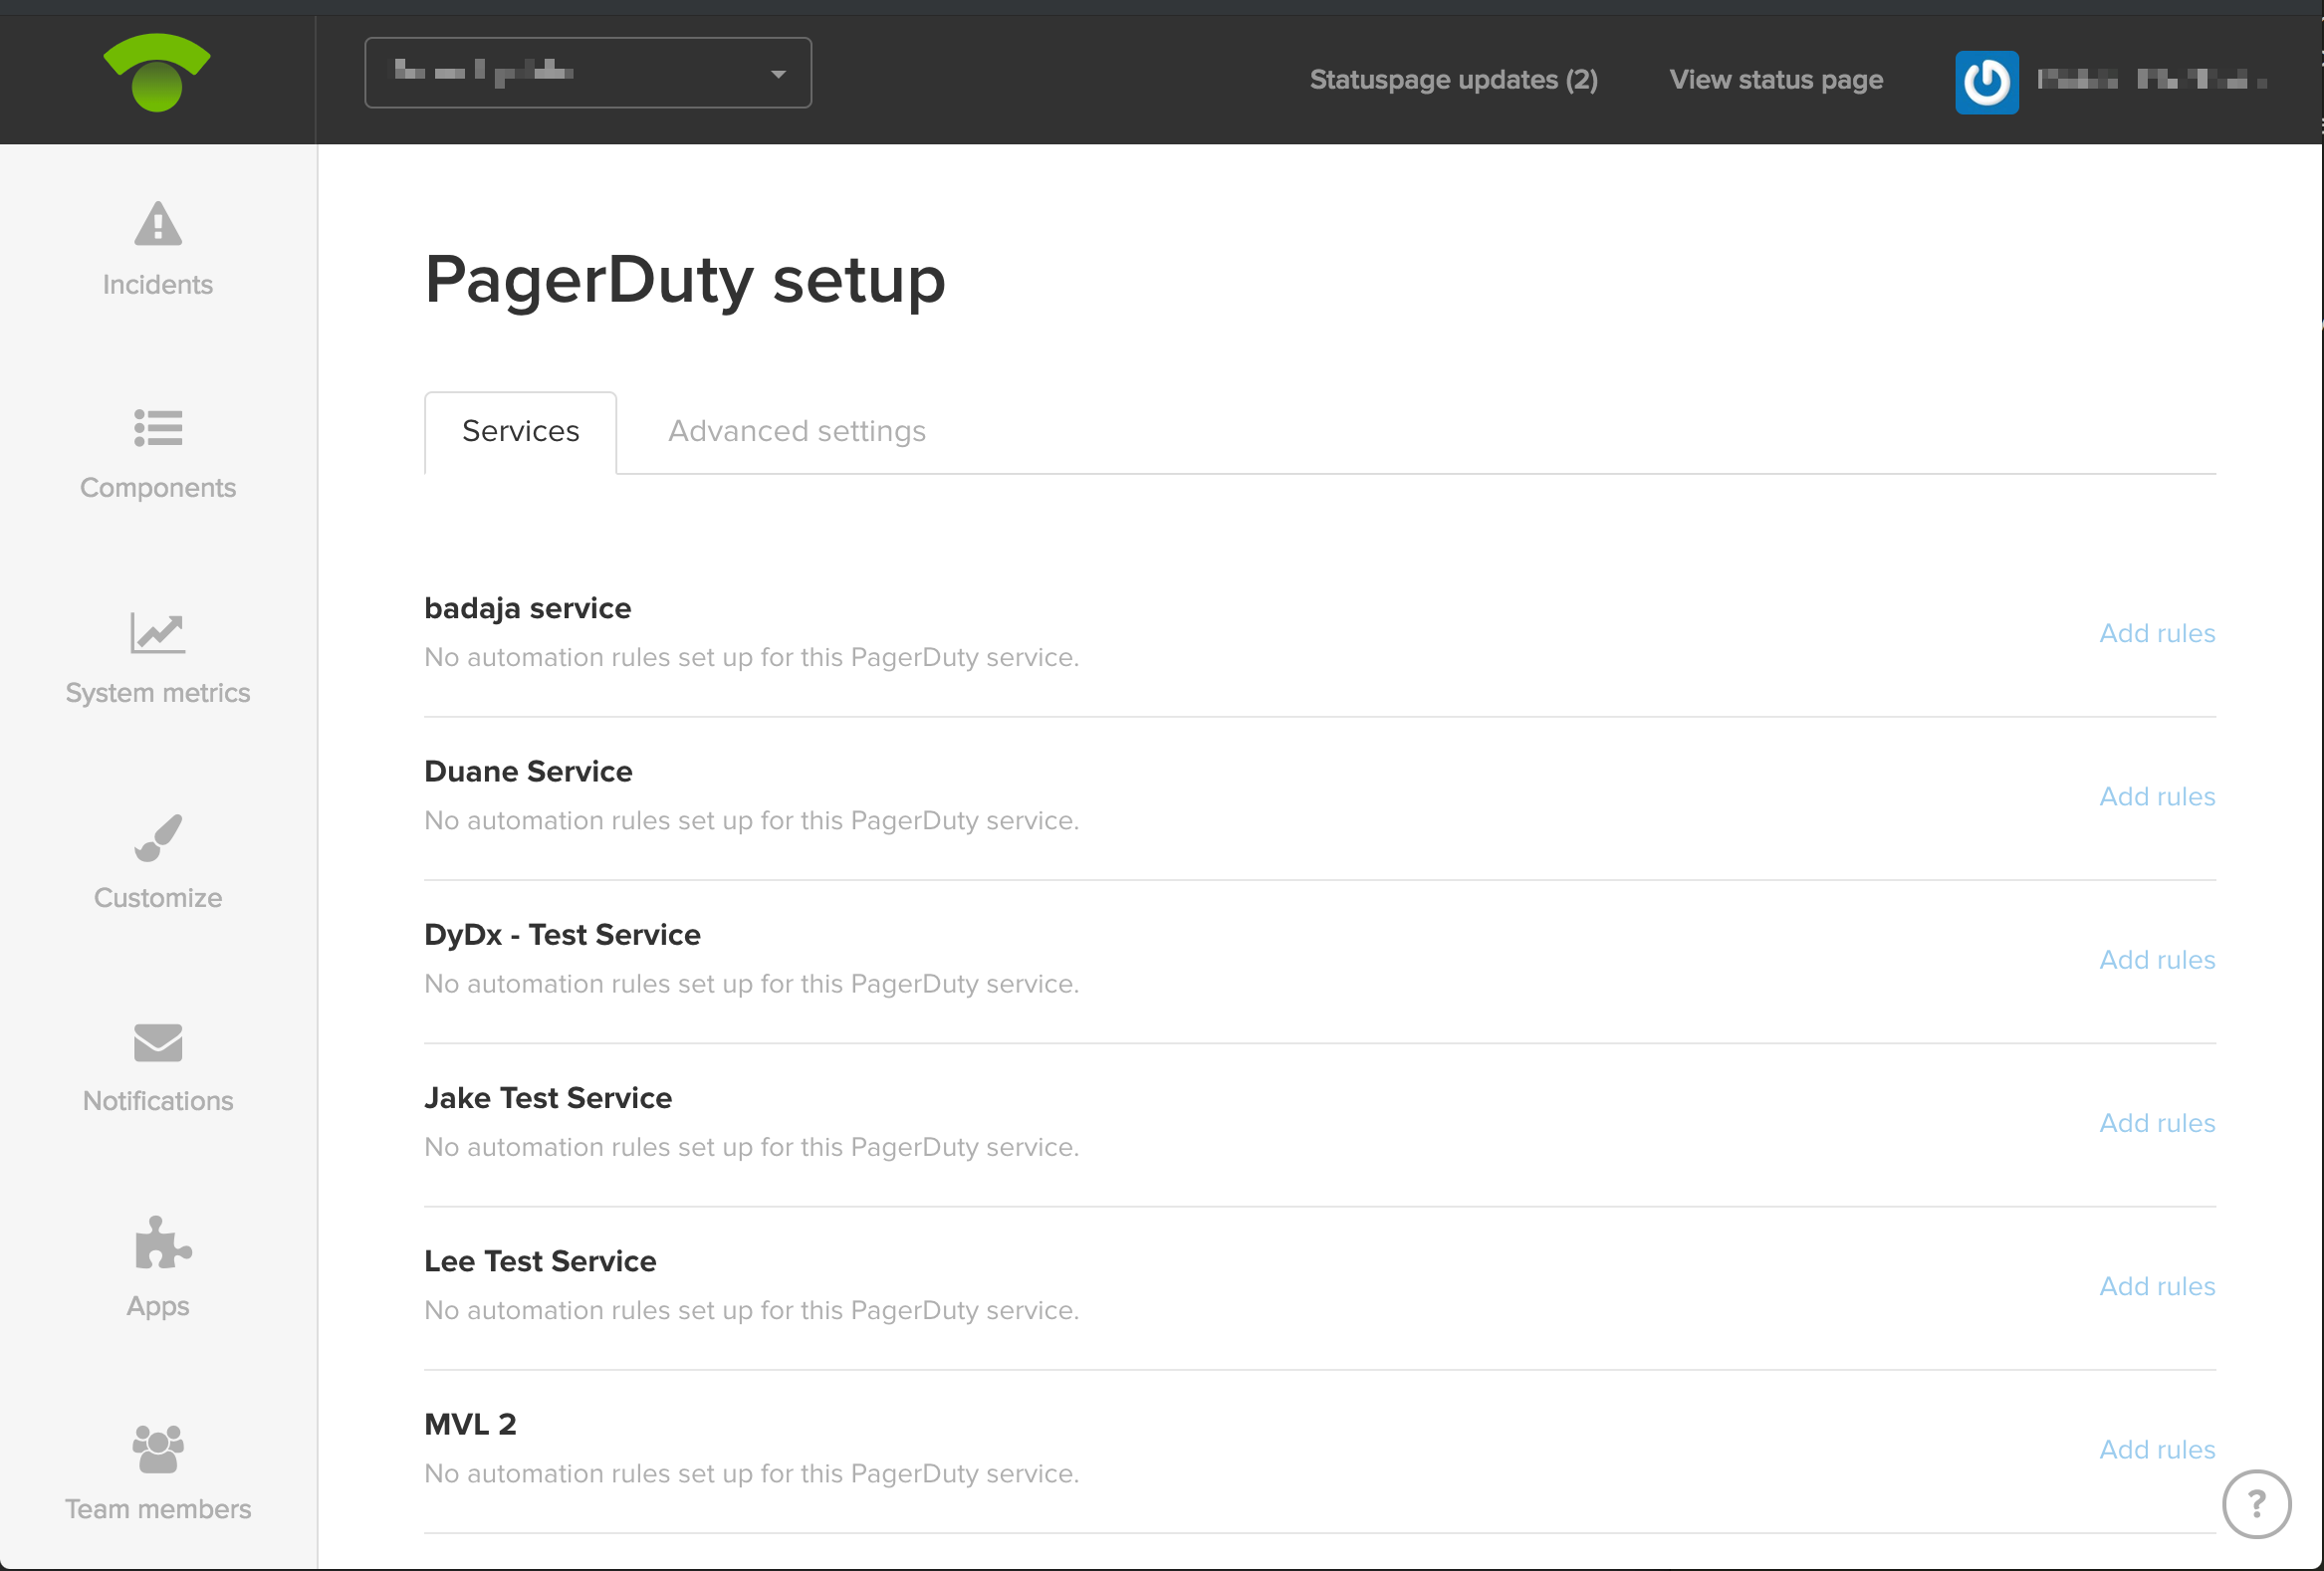 Example of PagerDuty setup screen